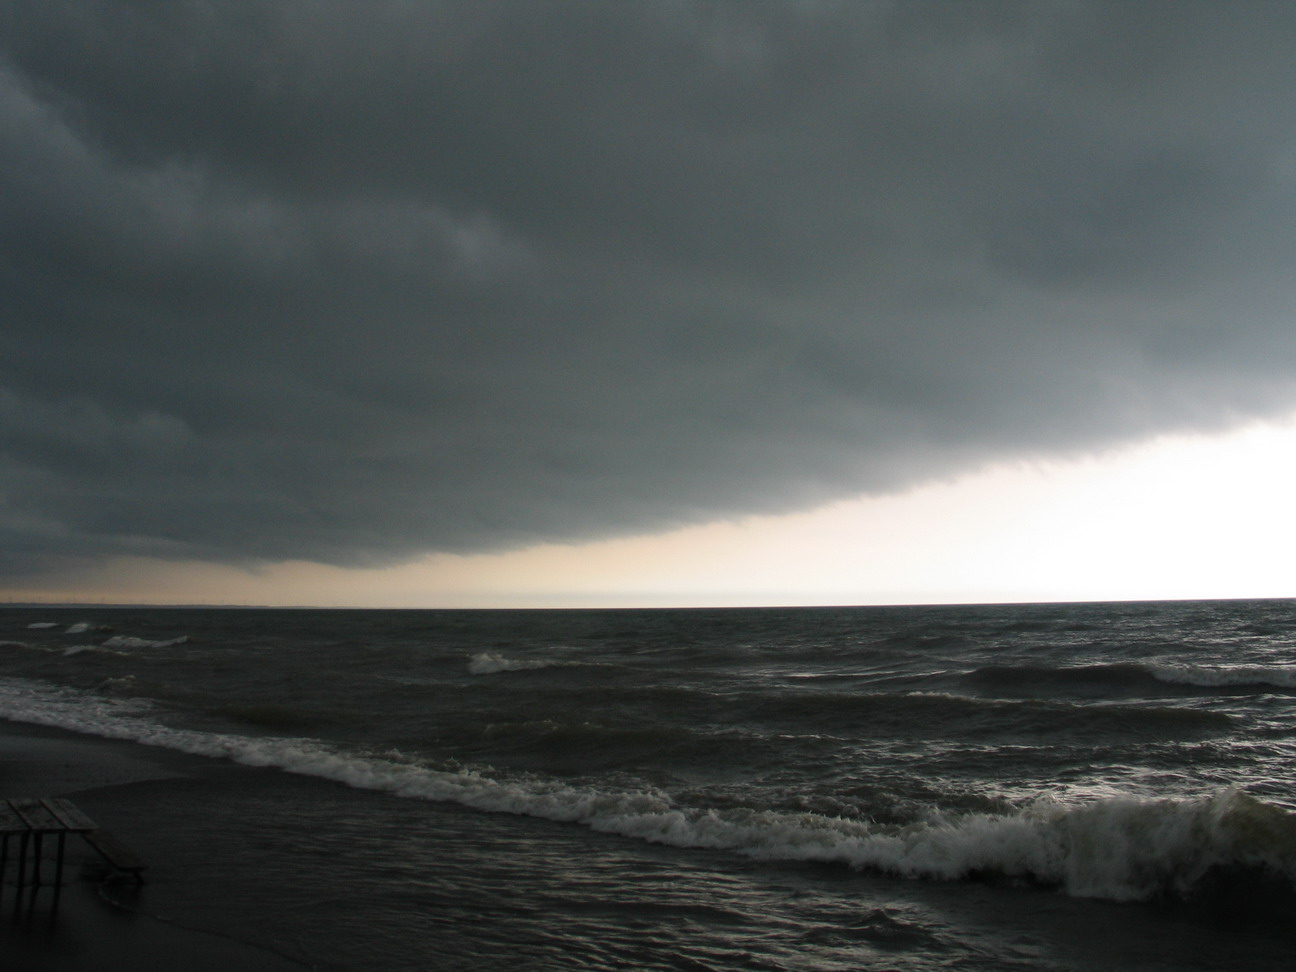 Lake Erie, storm approaching. Photo by Ulli Diemer